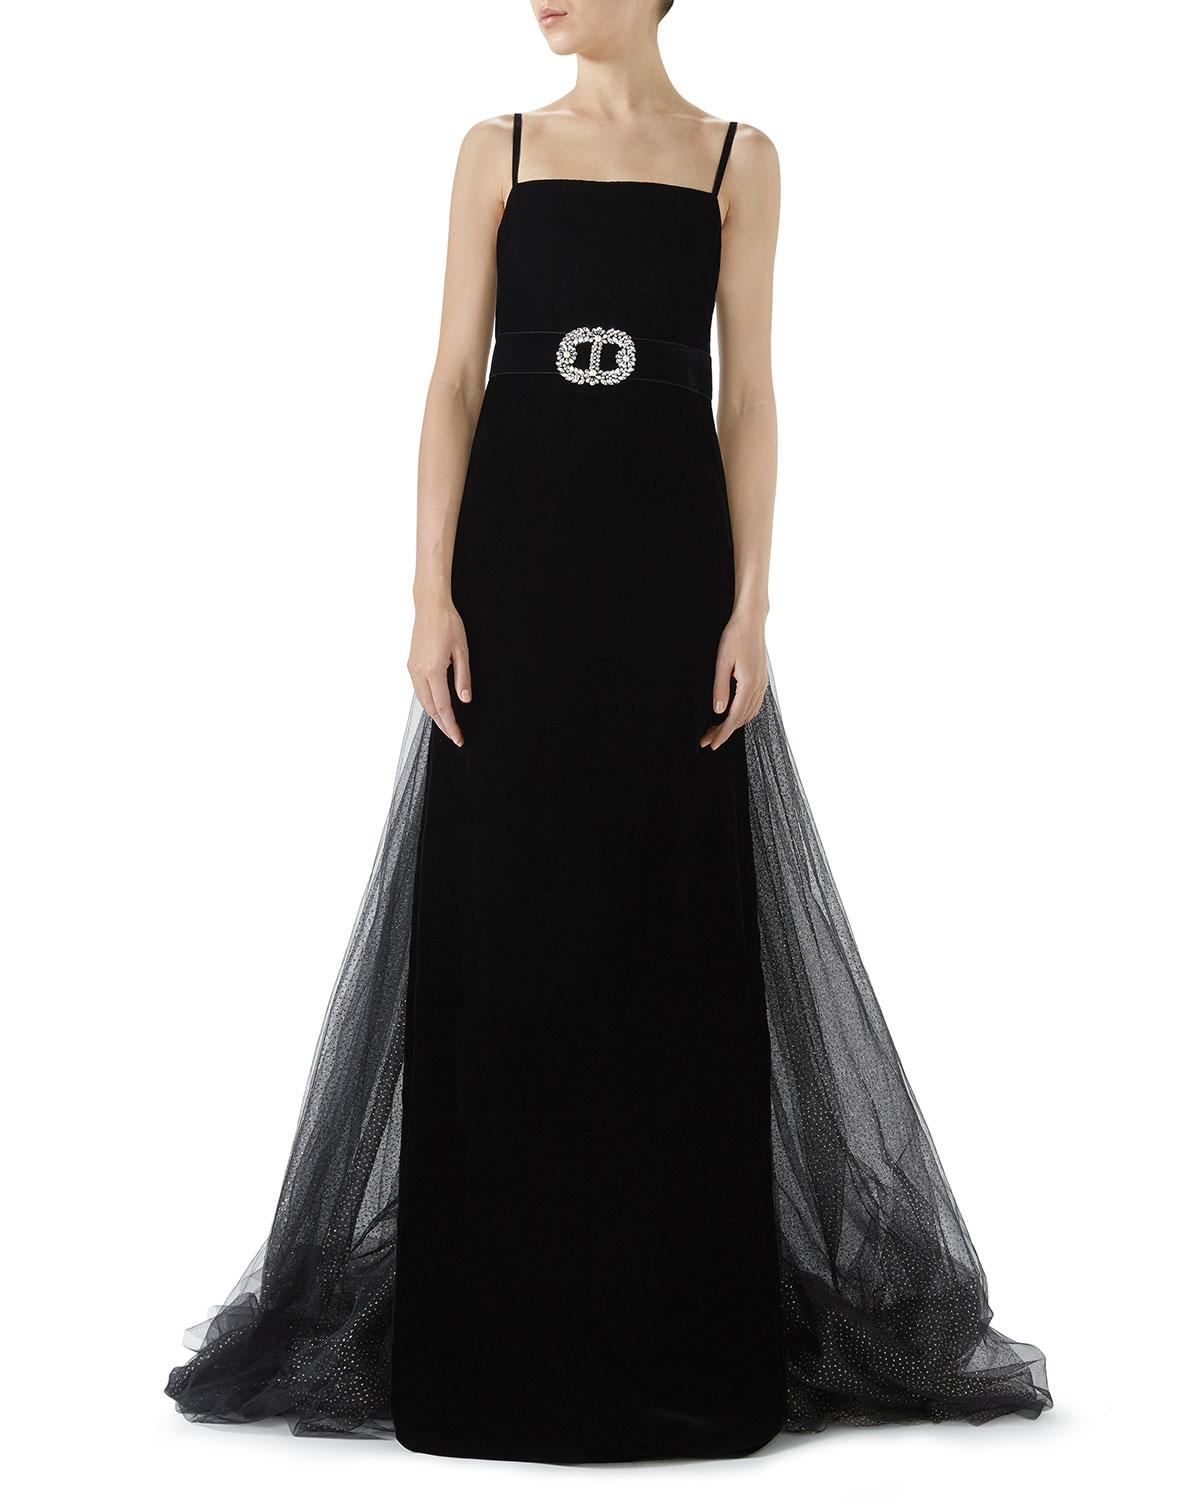 Lyst - Gucci Embroidered Velvet & Organza Evening Gown in Black